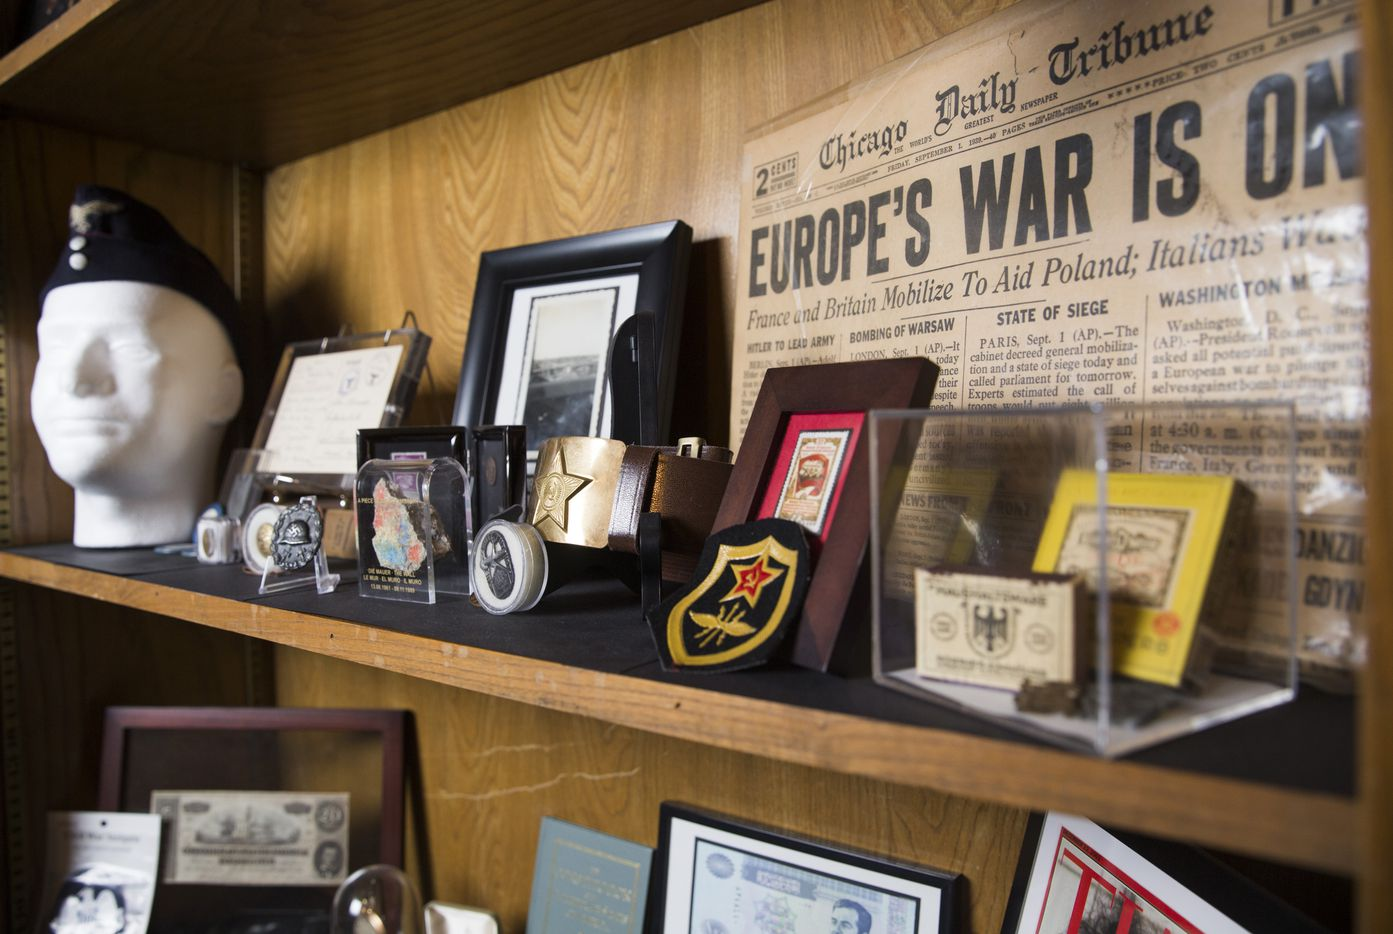 Military memorabilia sits on a shelf in the bedroom of Andy Fancher, 18, on Wednesday, July 12, 2017 at his home in Duncanville.